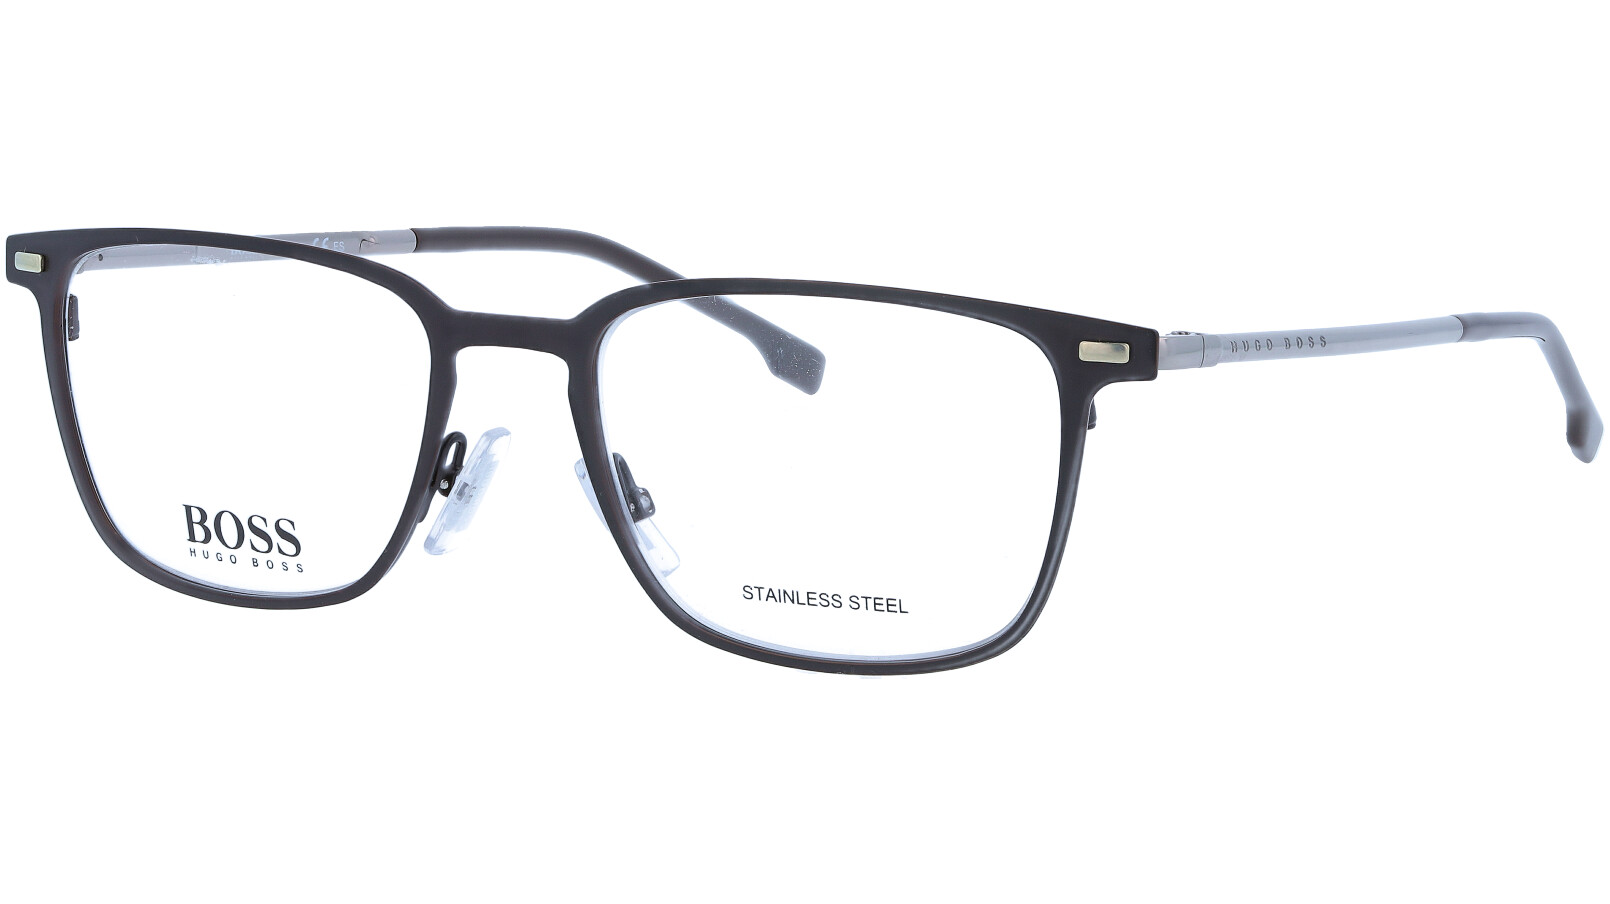 HUGO BOSS BOSS1021 4IN 52 MATT Glasses